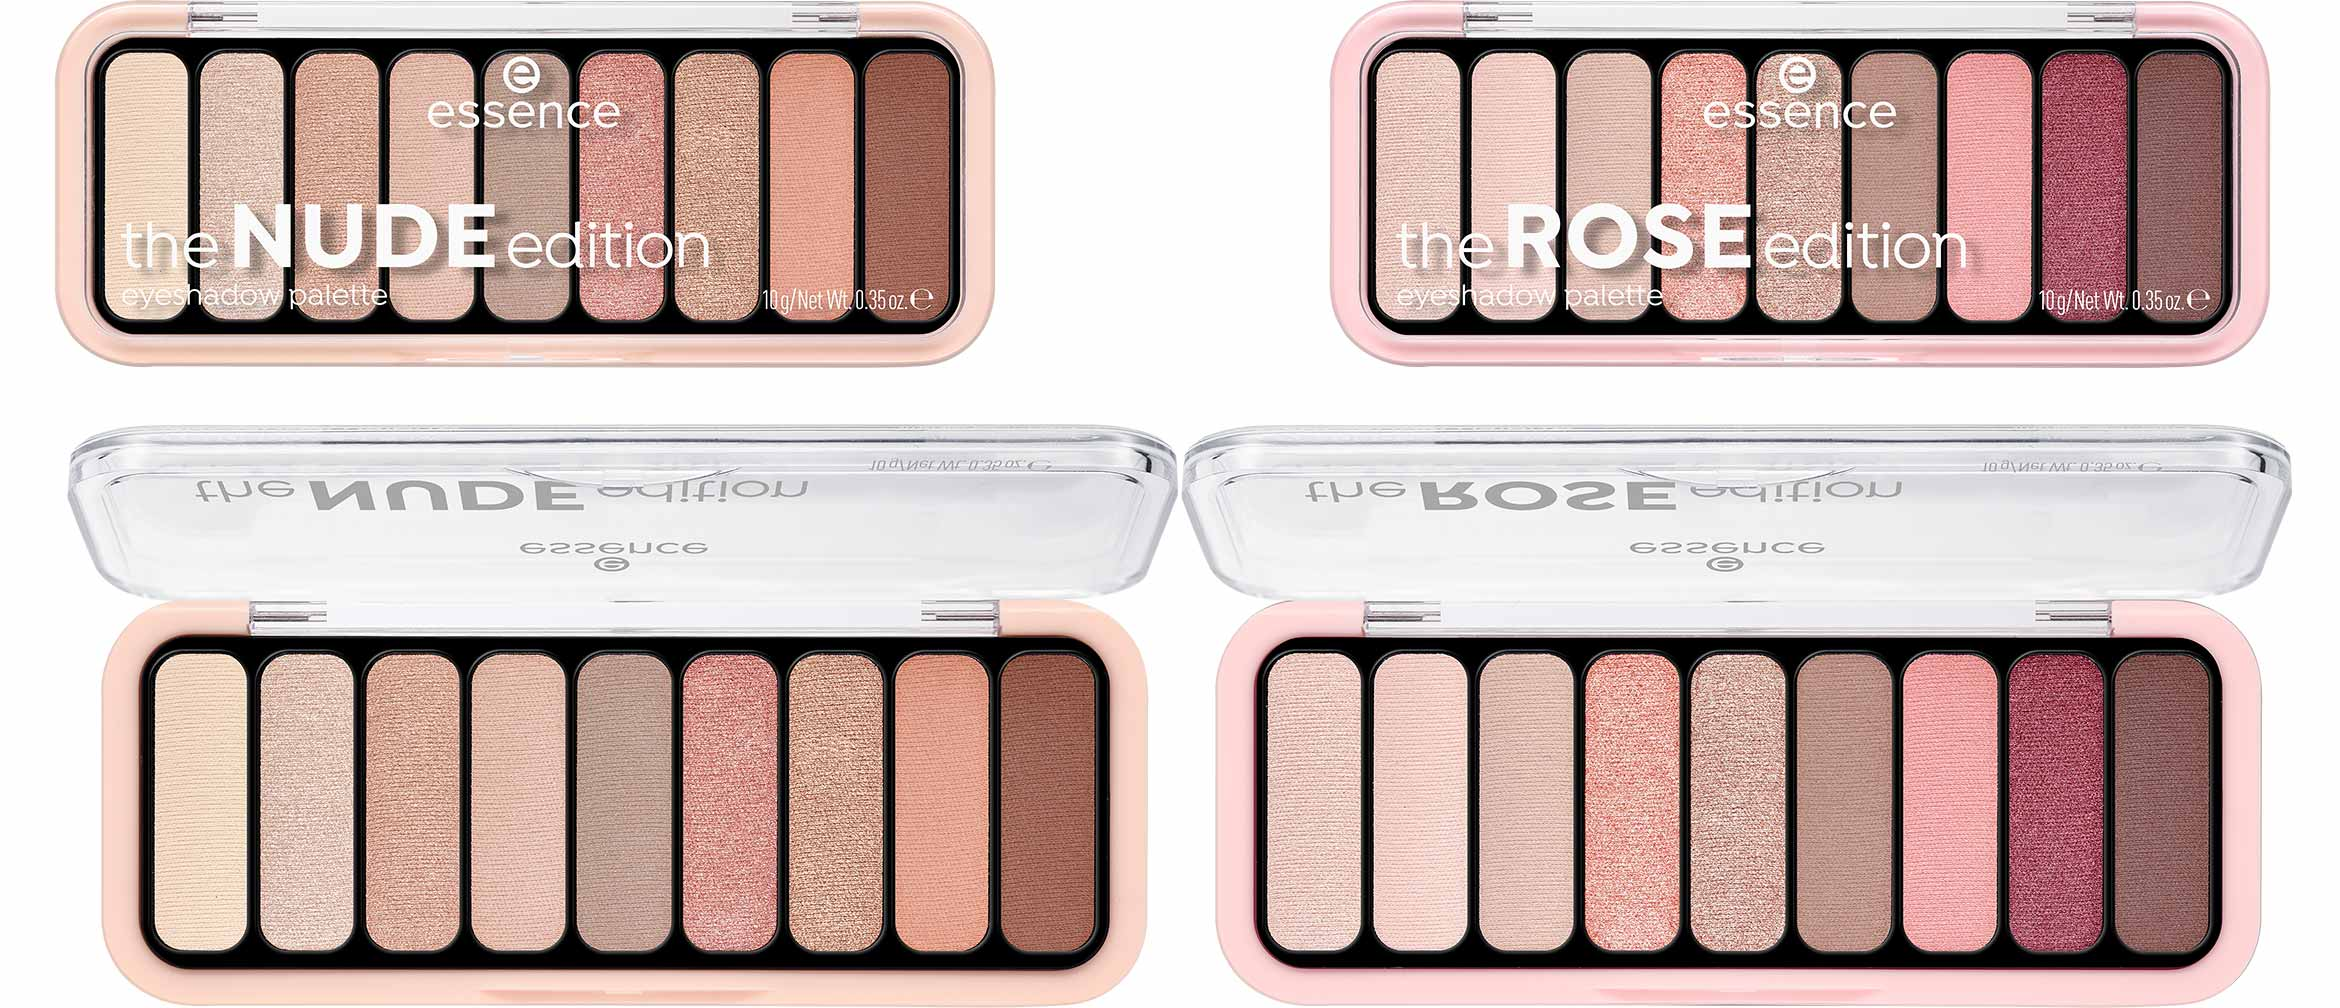 essence-the-nude-rose-edition-eyeshadow-palette